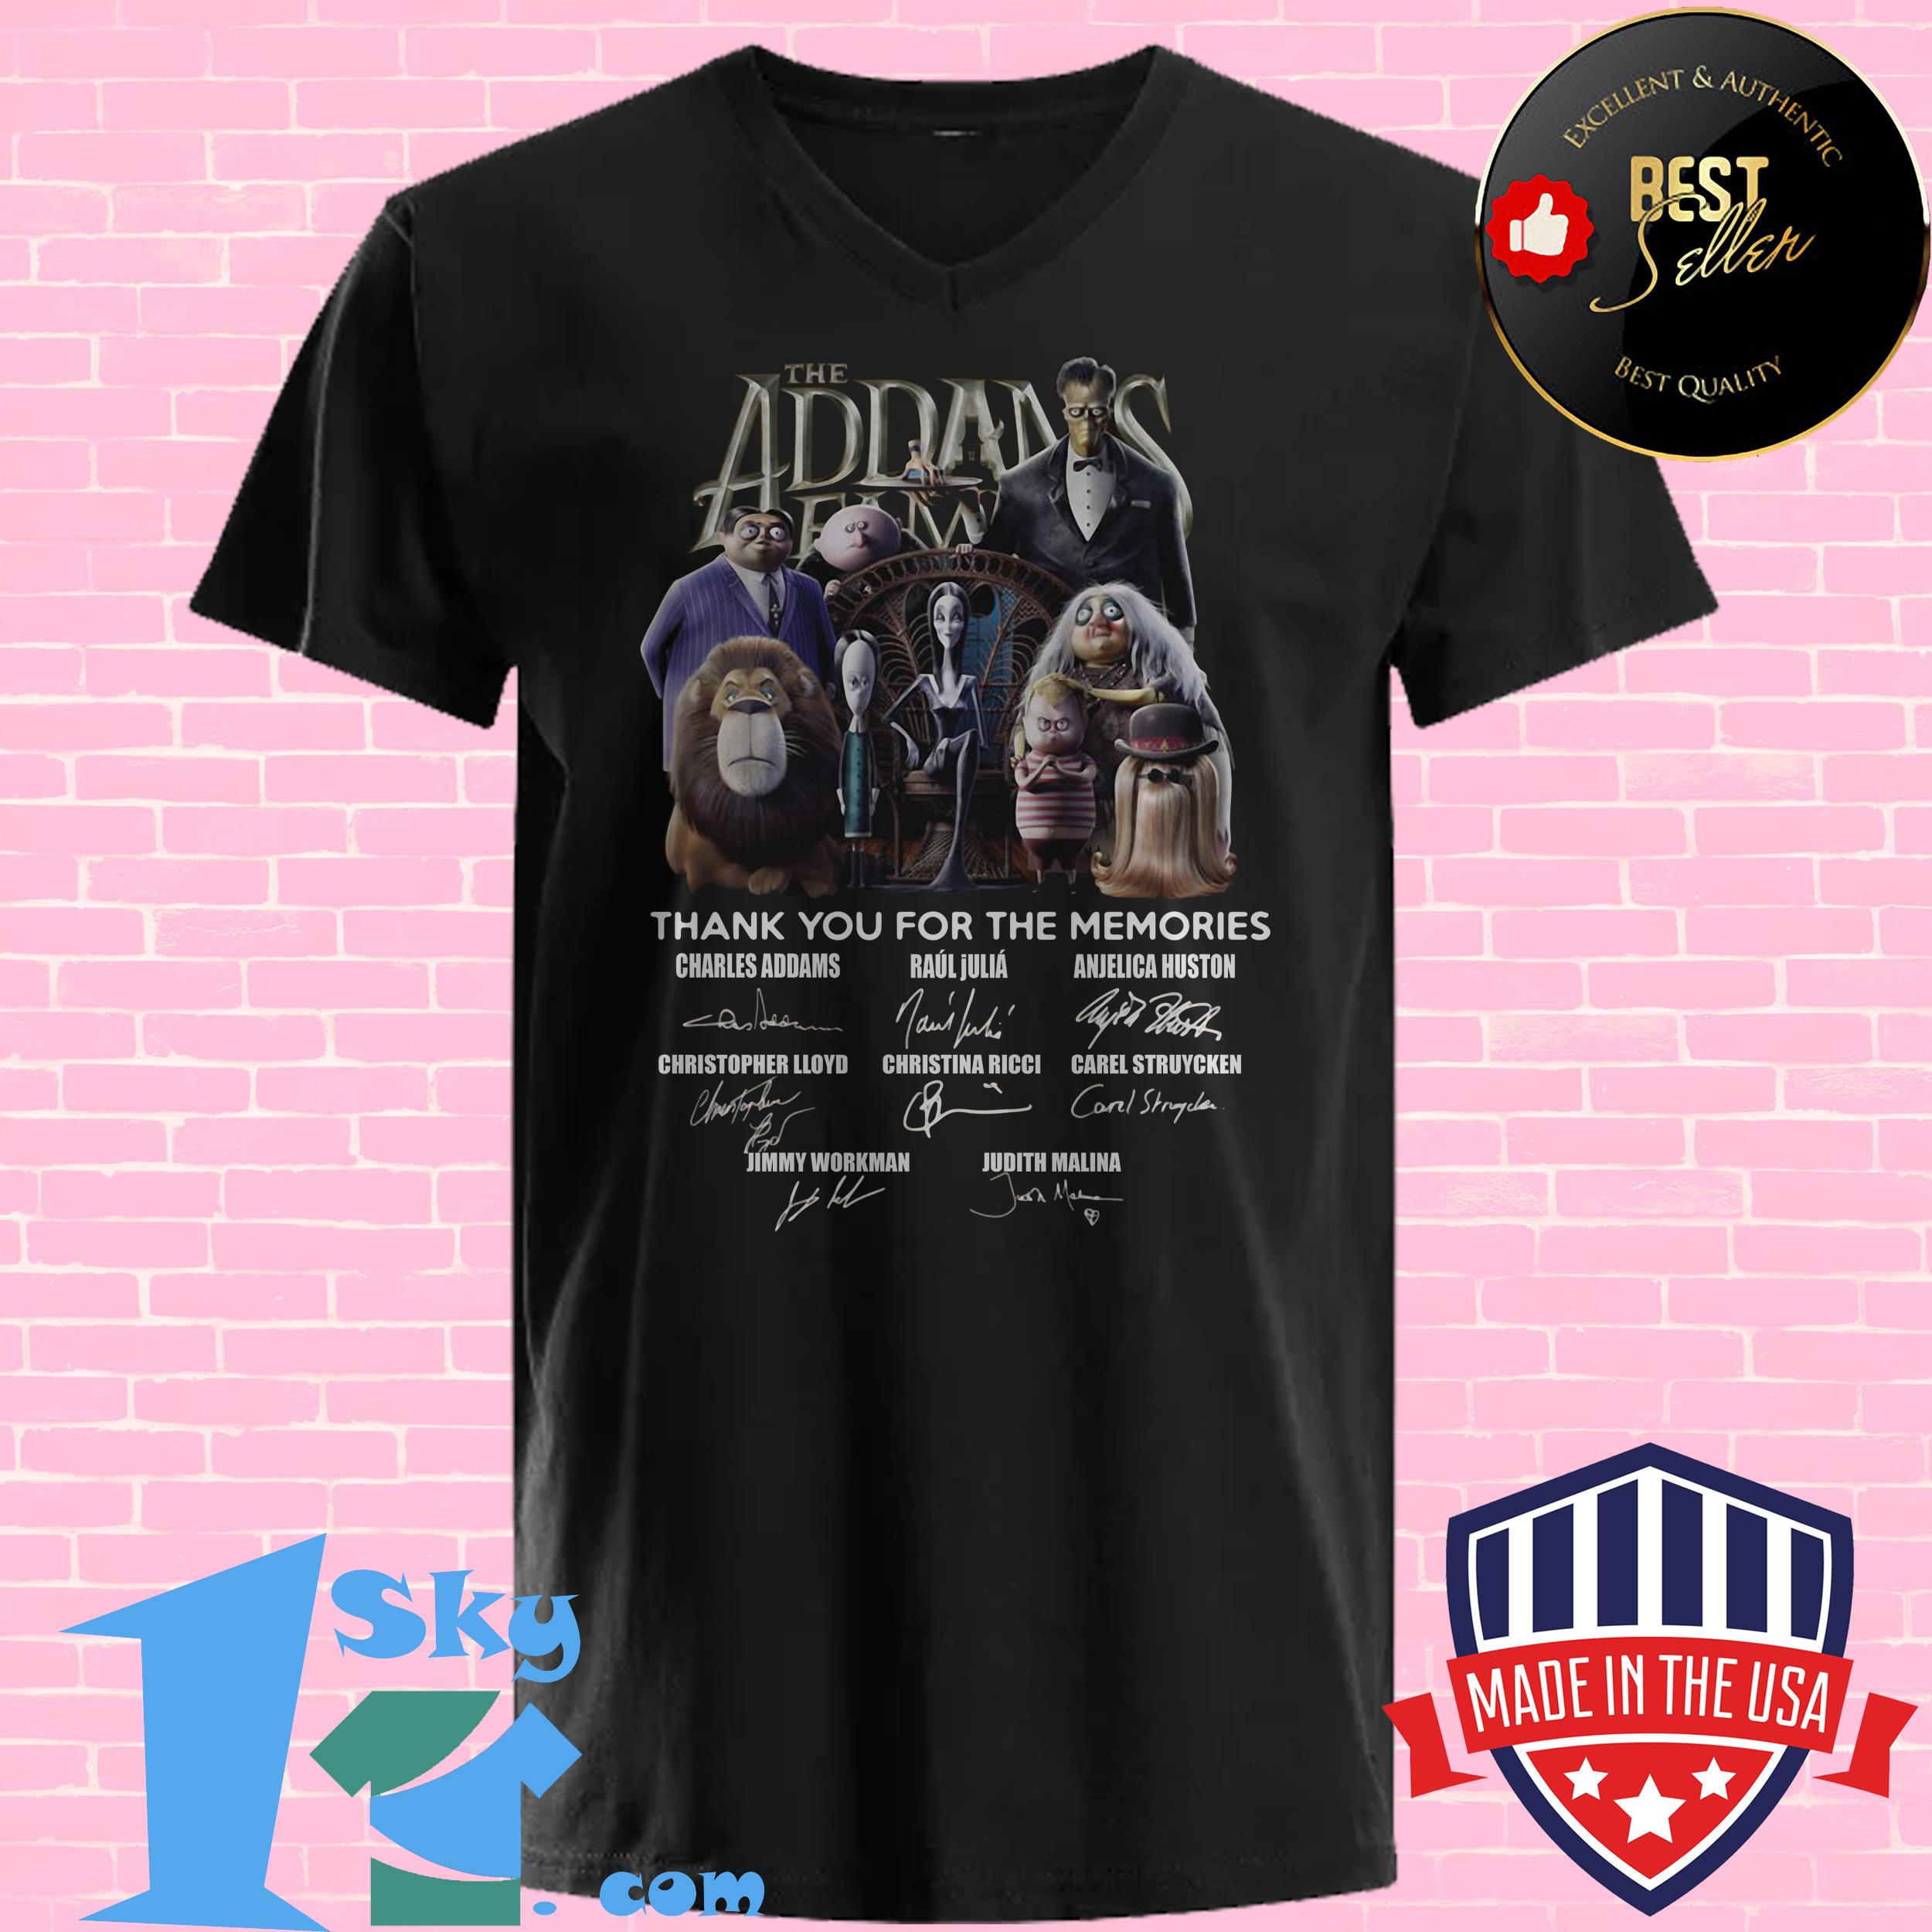 the addams family thank you for the memories signature v neck - The Addams Family Thank You For The Memories Signature Shirt